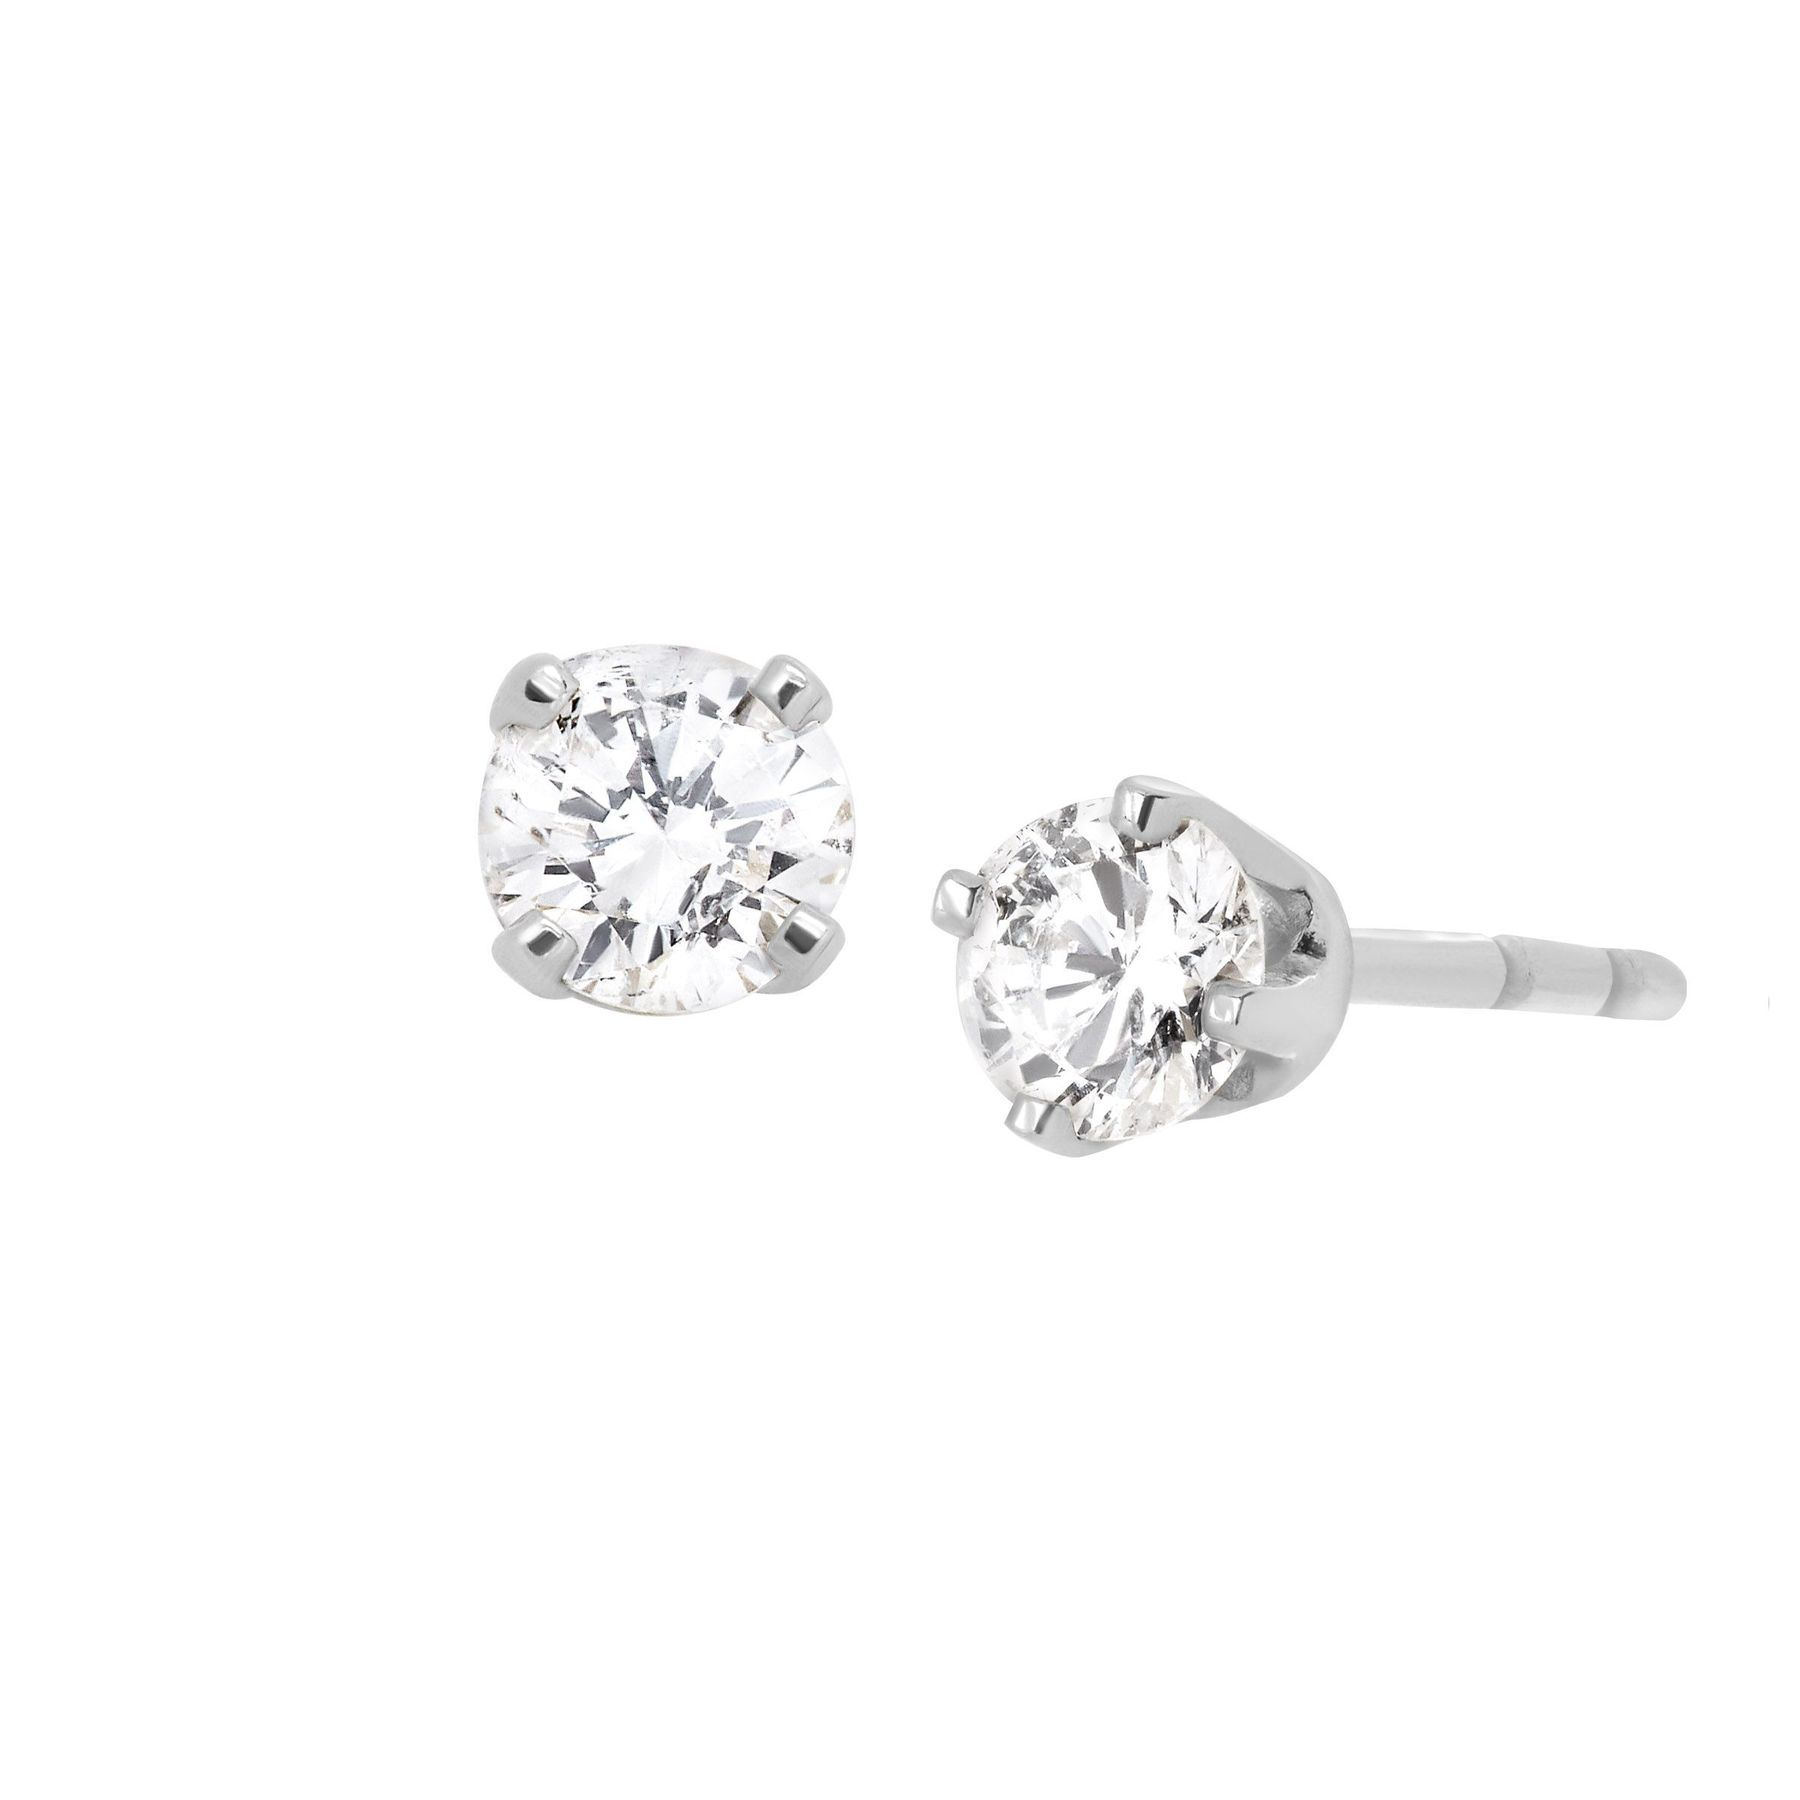 1 5 ct earrings 1 5 ct earrings shaped 1 carat 6939